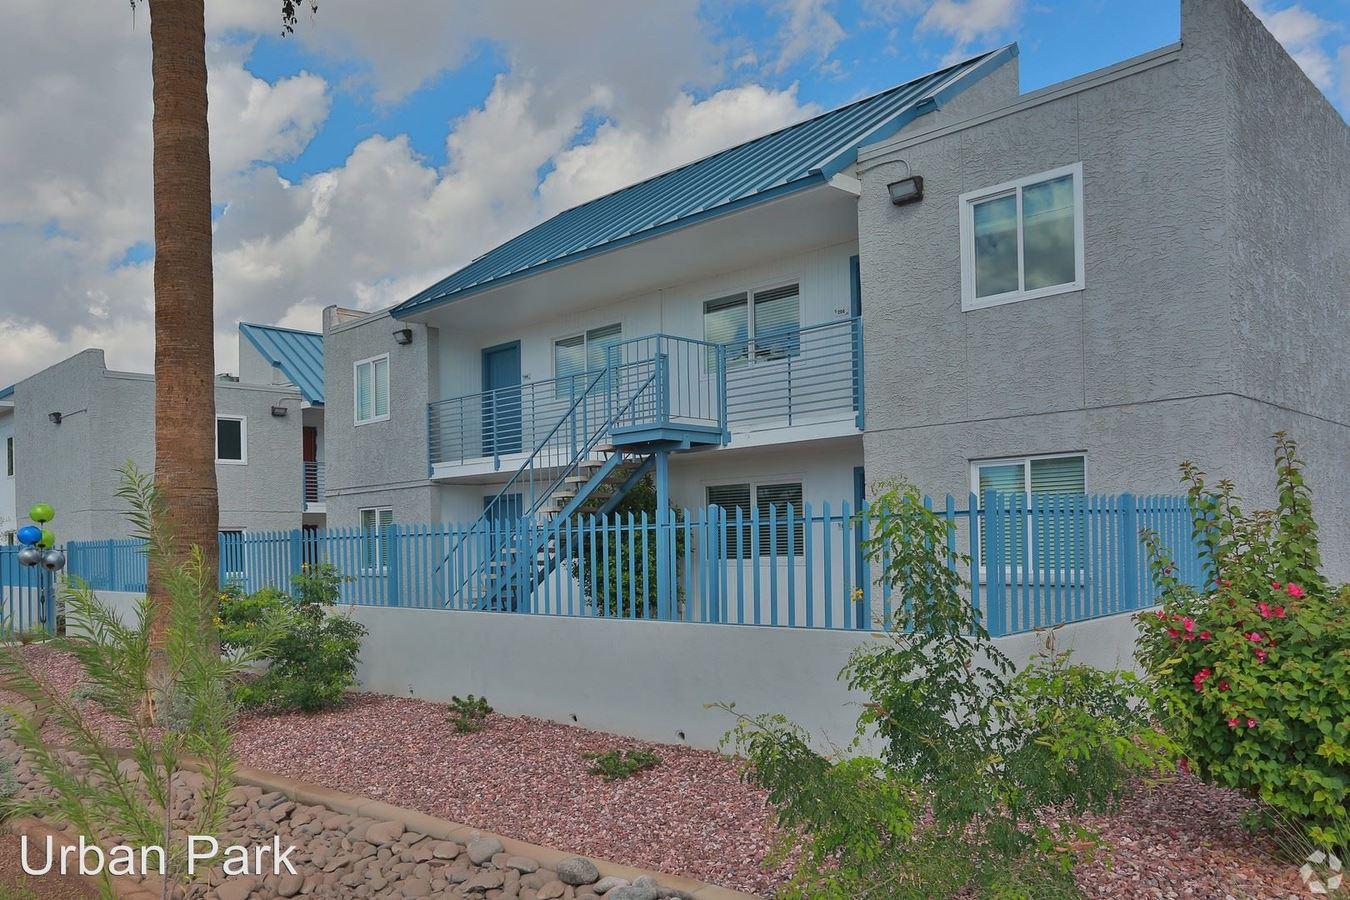 1 Bedroom 1 Bathroom Apartment for rent at 948 E. Devonshire Avenue in Phoenix, AZ